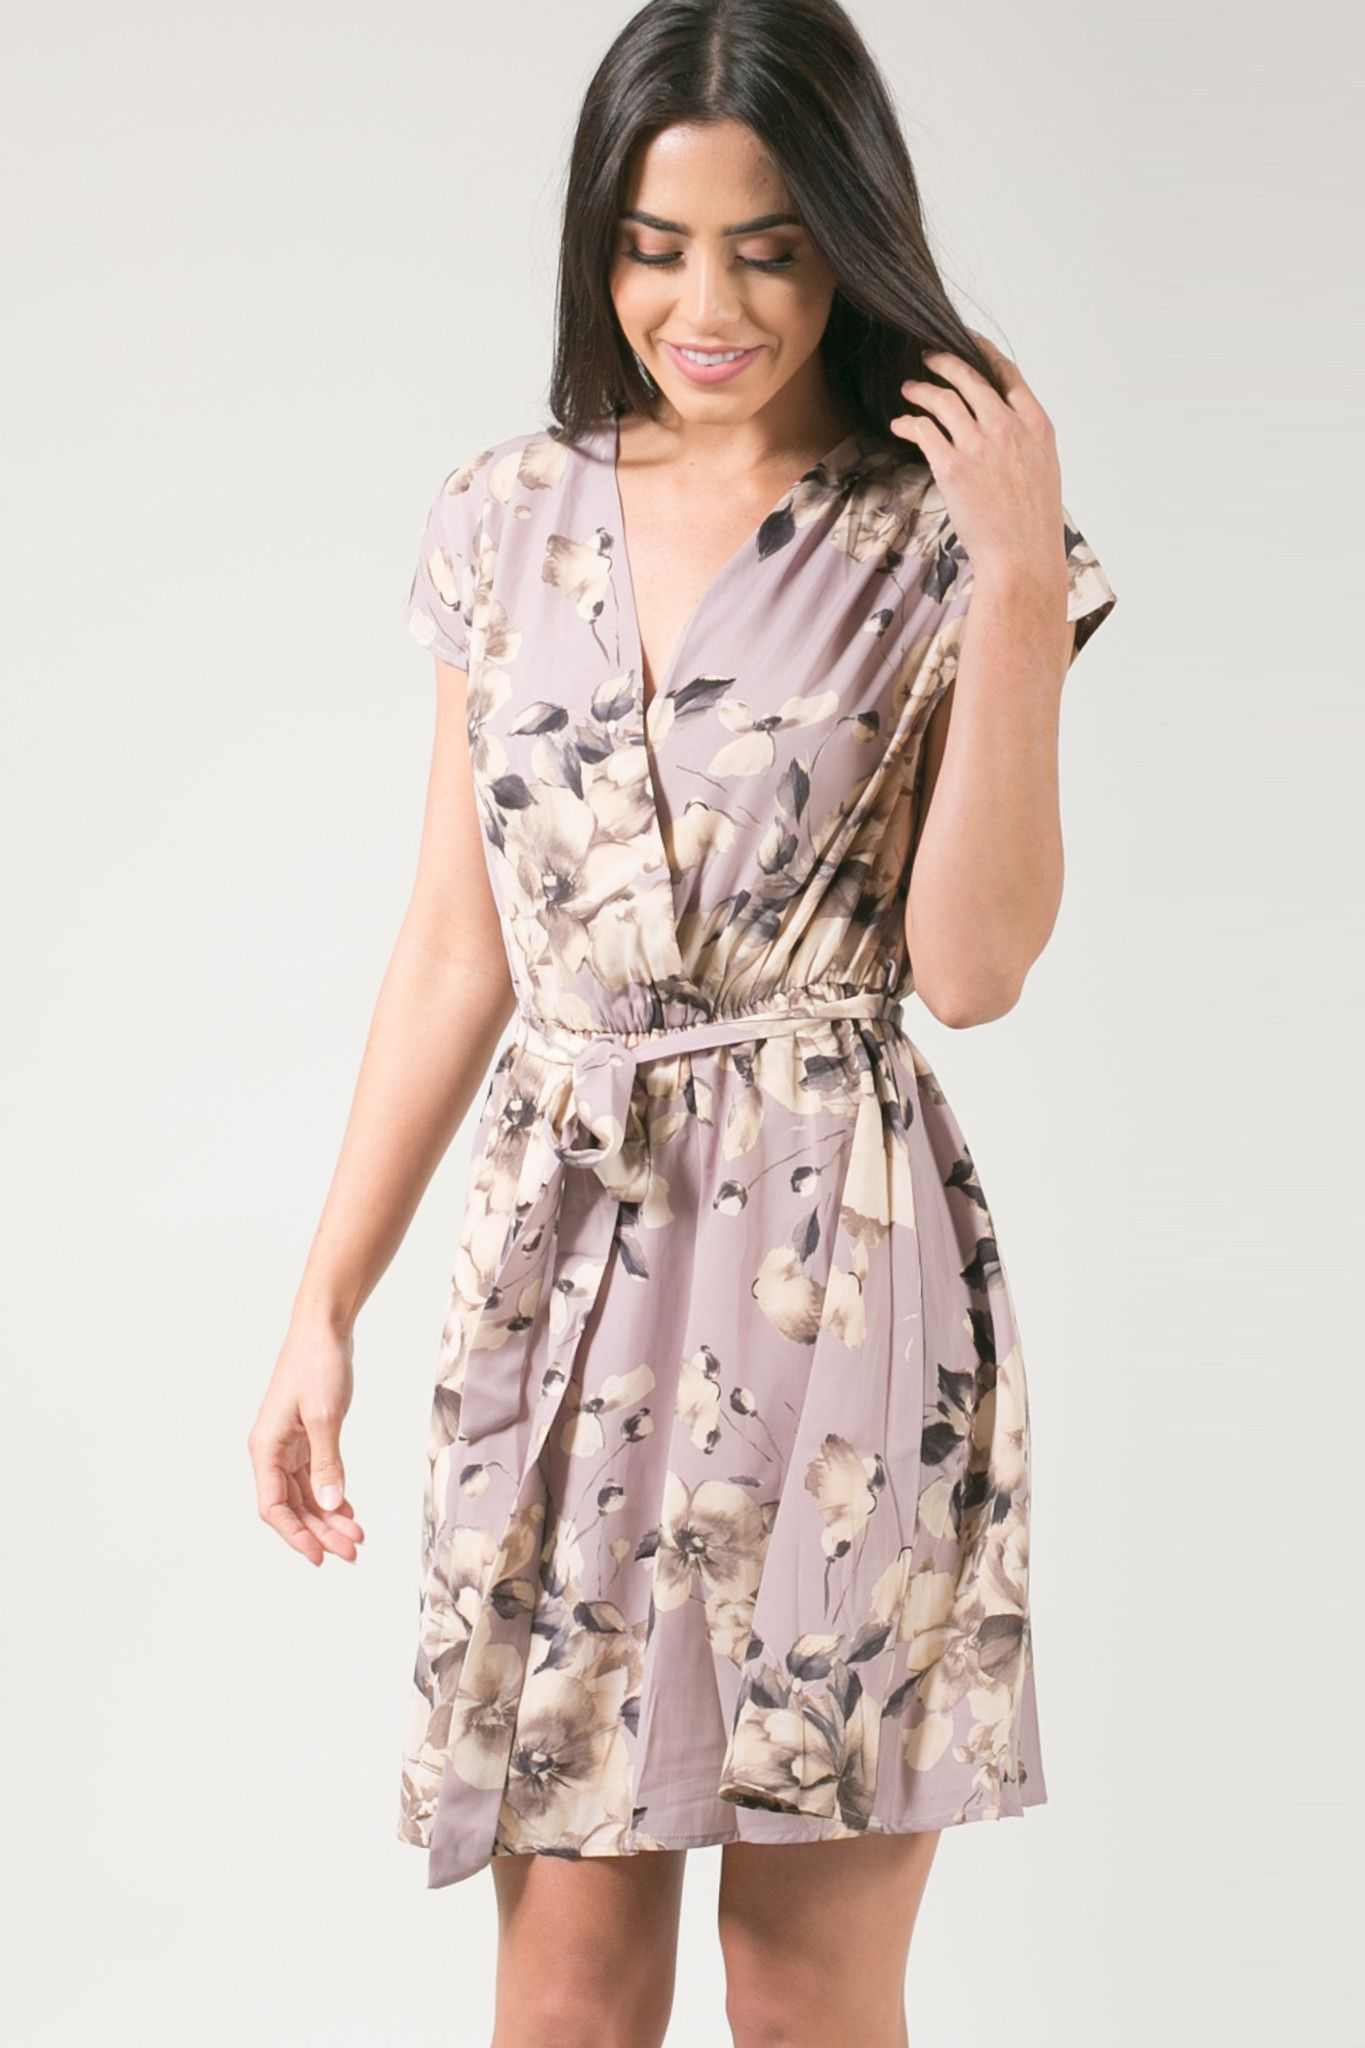 Our Olivia floral wrap dress is a must-have for looking effortlessly chic. This gorgeous mauve and taupe floral dress has an elastic waist and faux wrap style that we love so much! We are packing this